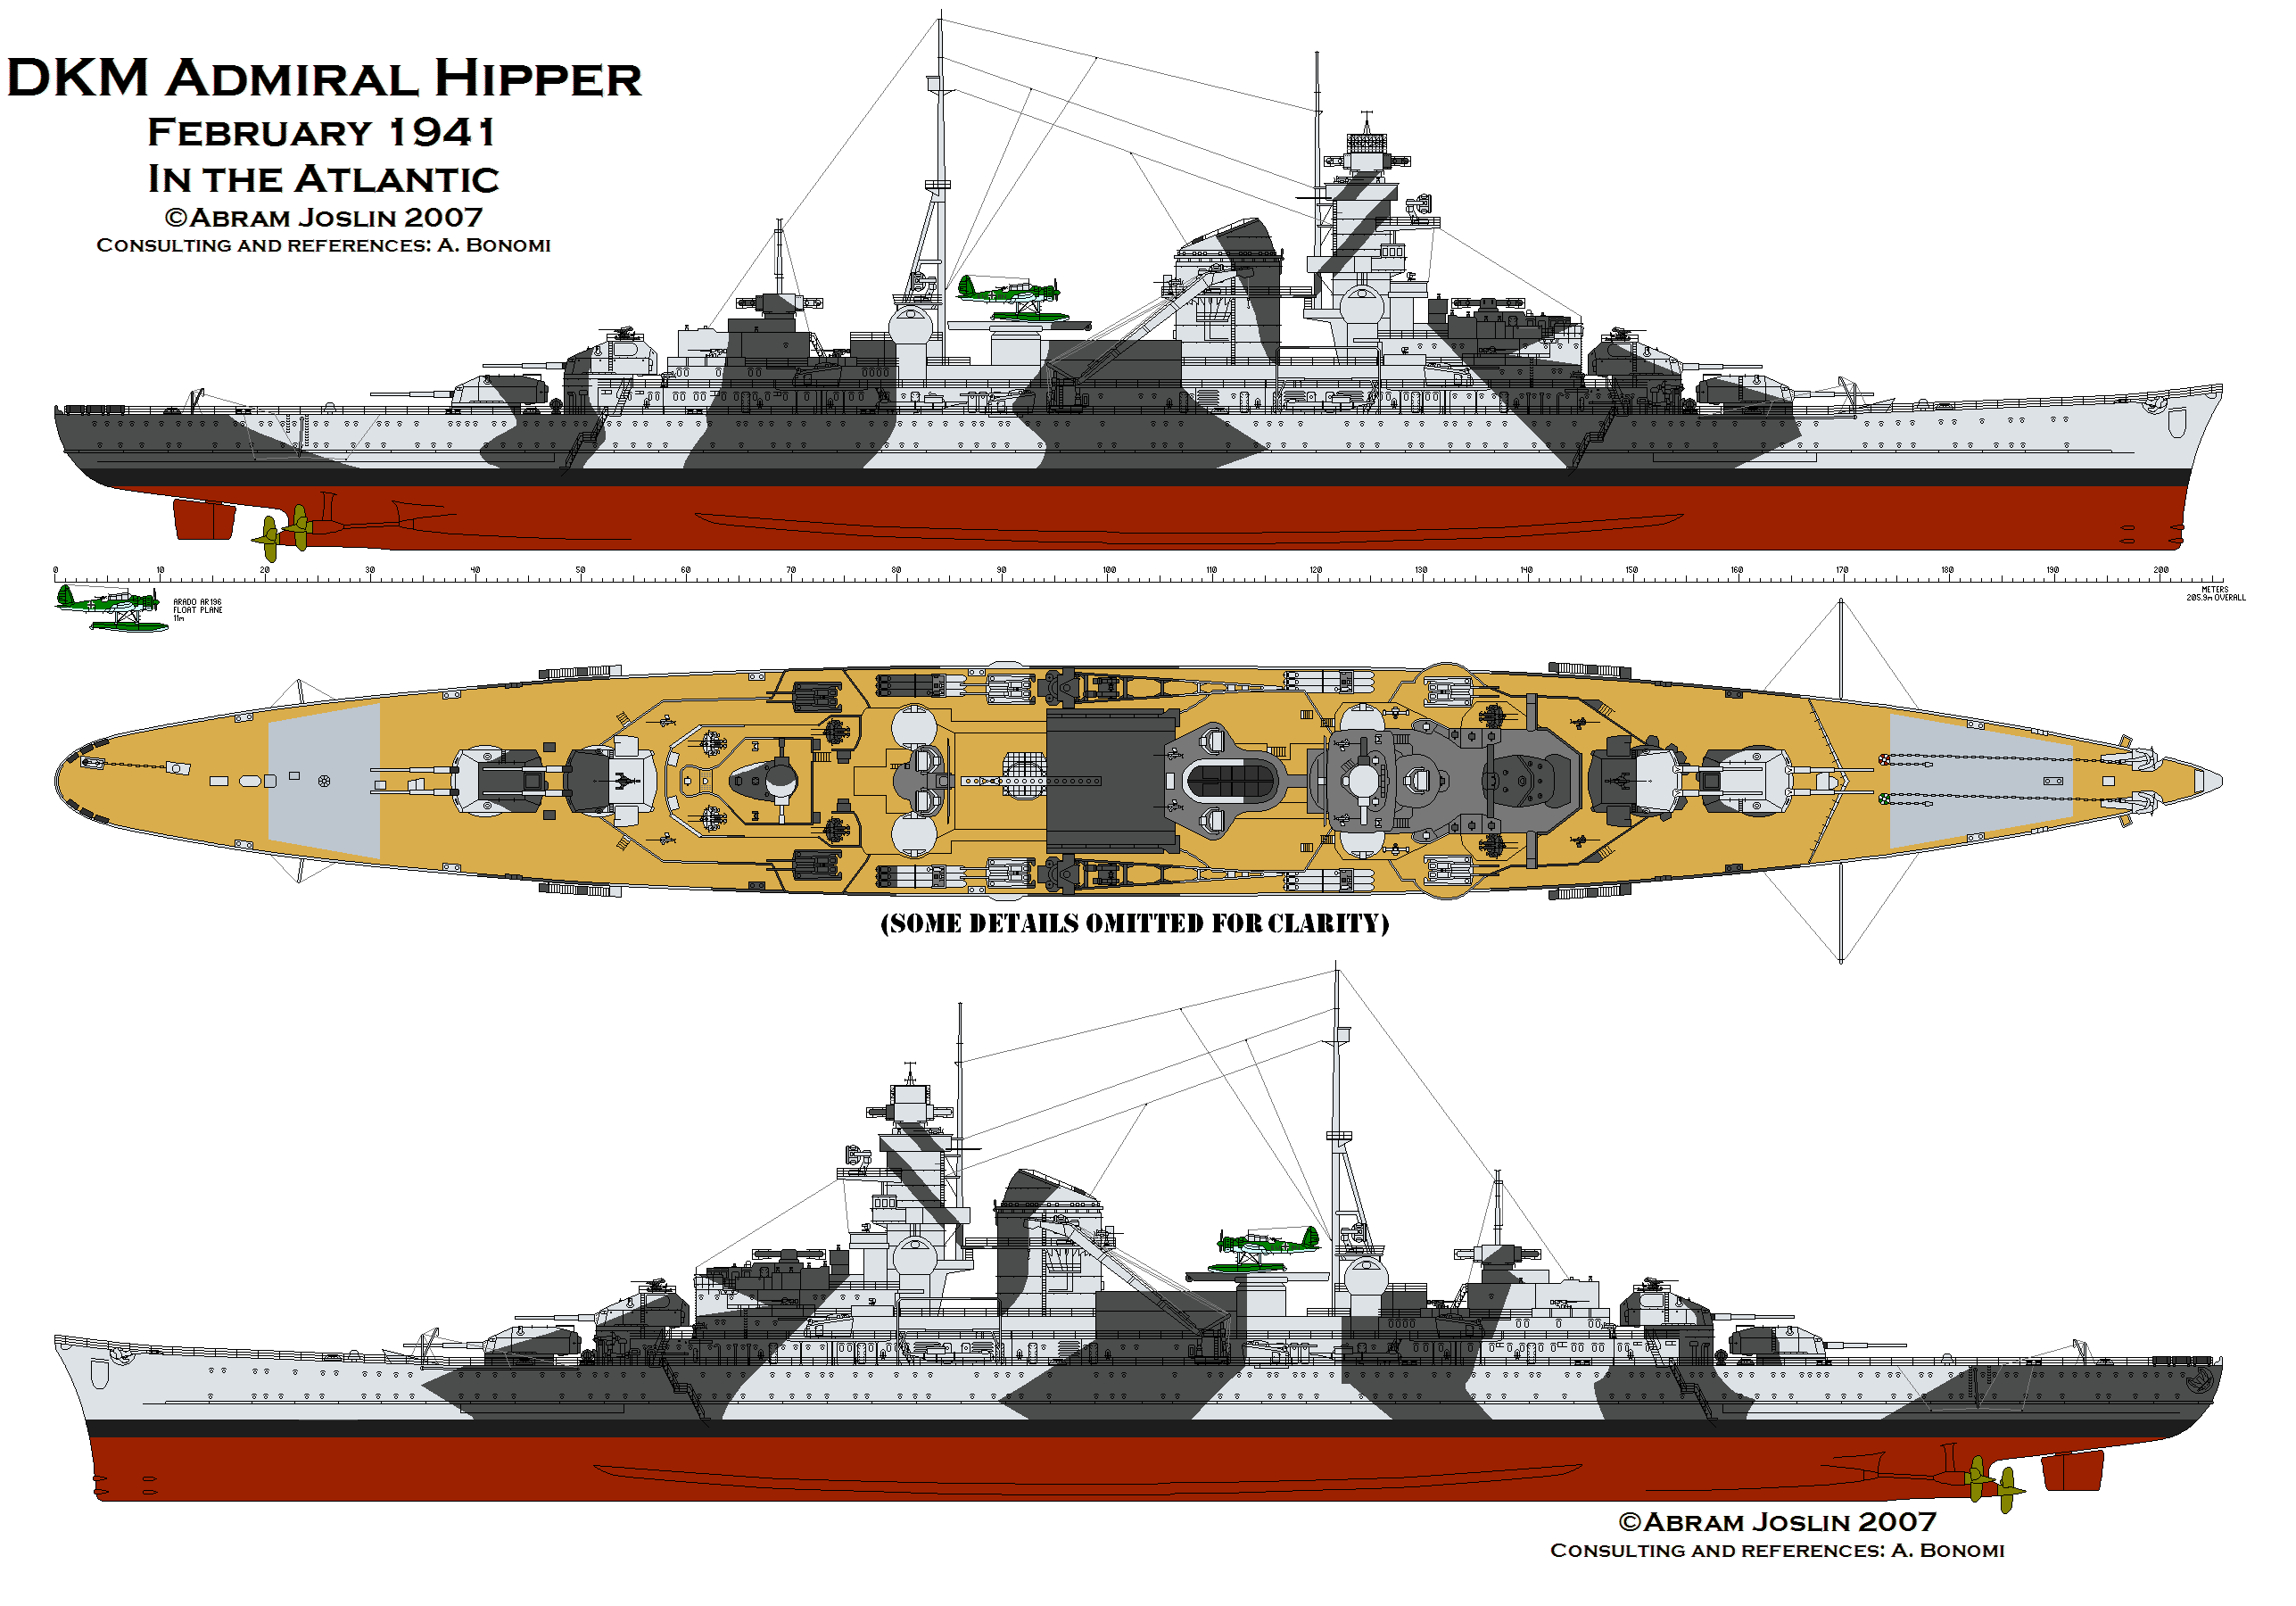 16Admiral-Hipper-february1941.png